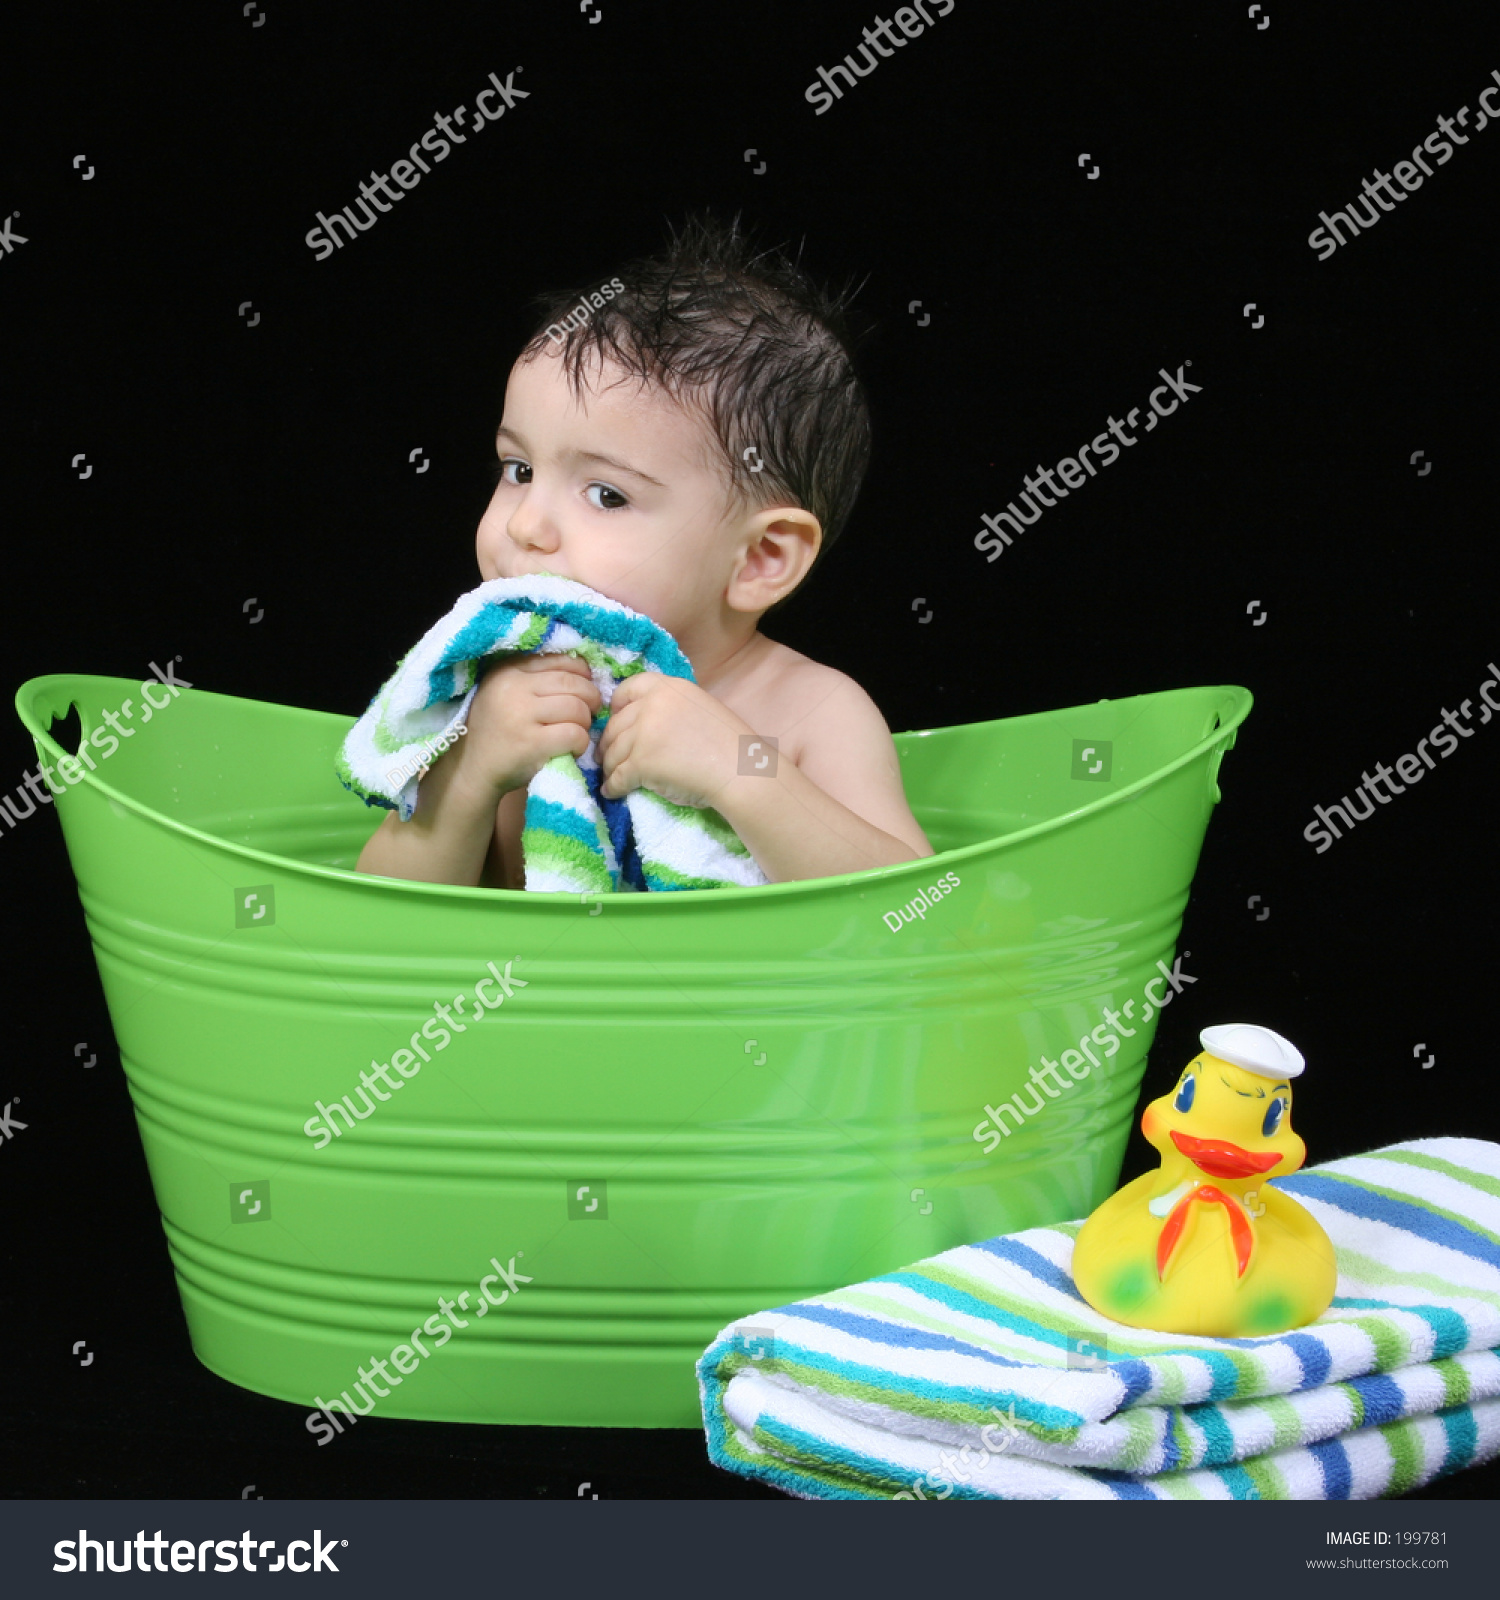 Two Year Old Boy In A Green Tub Washing His Face Stock Photo 199781 Shutte